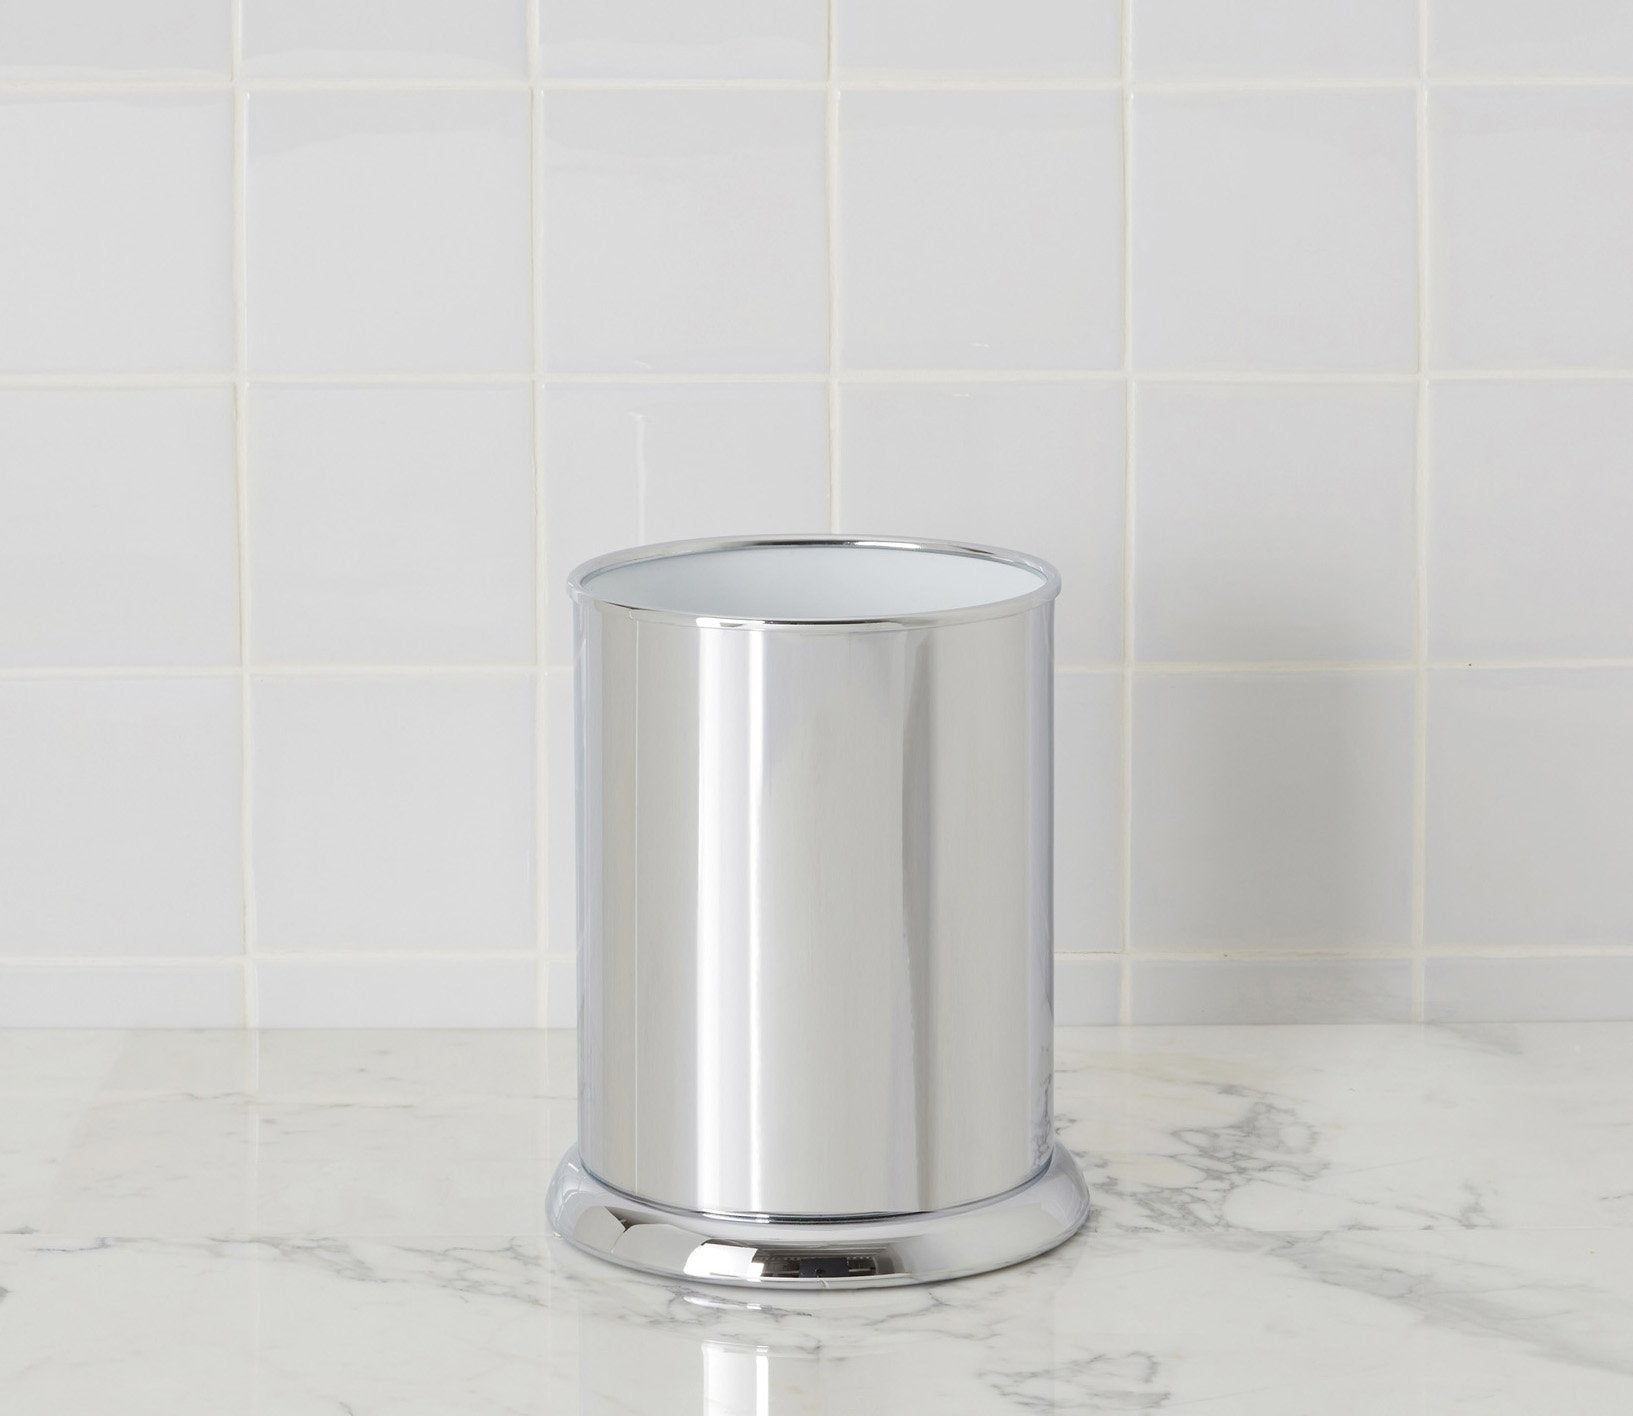 Universal Waste Bin Round Product Image 1